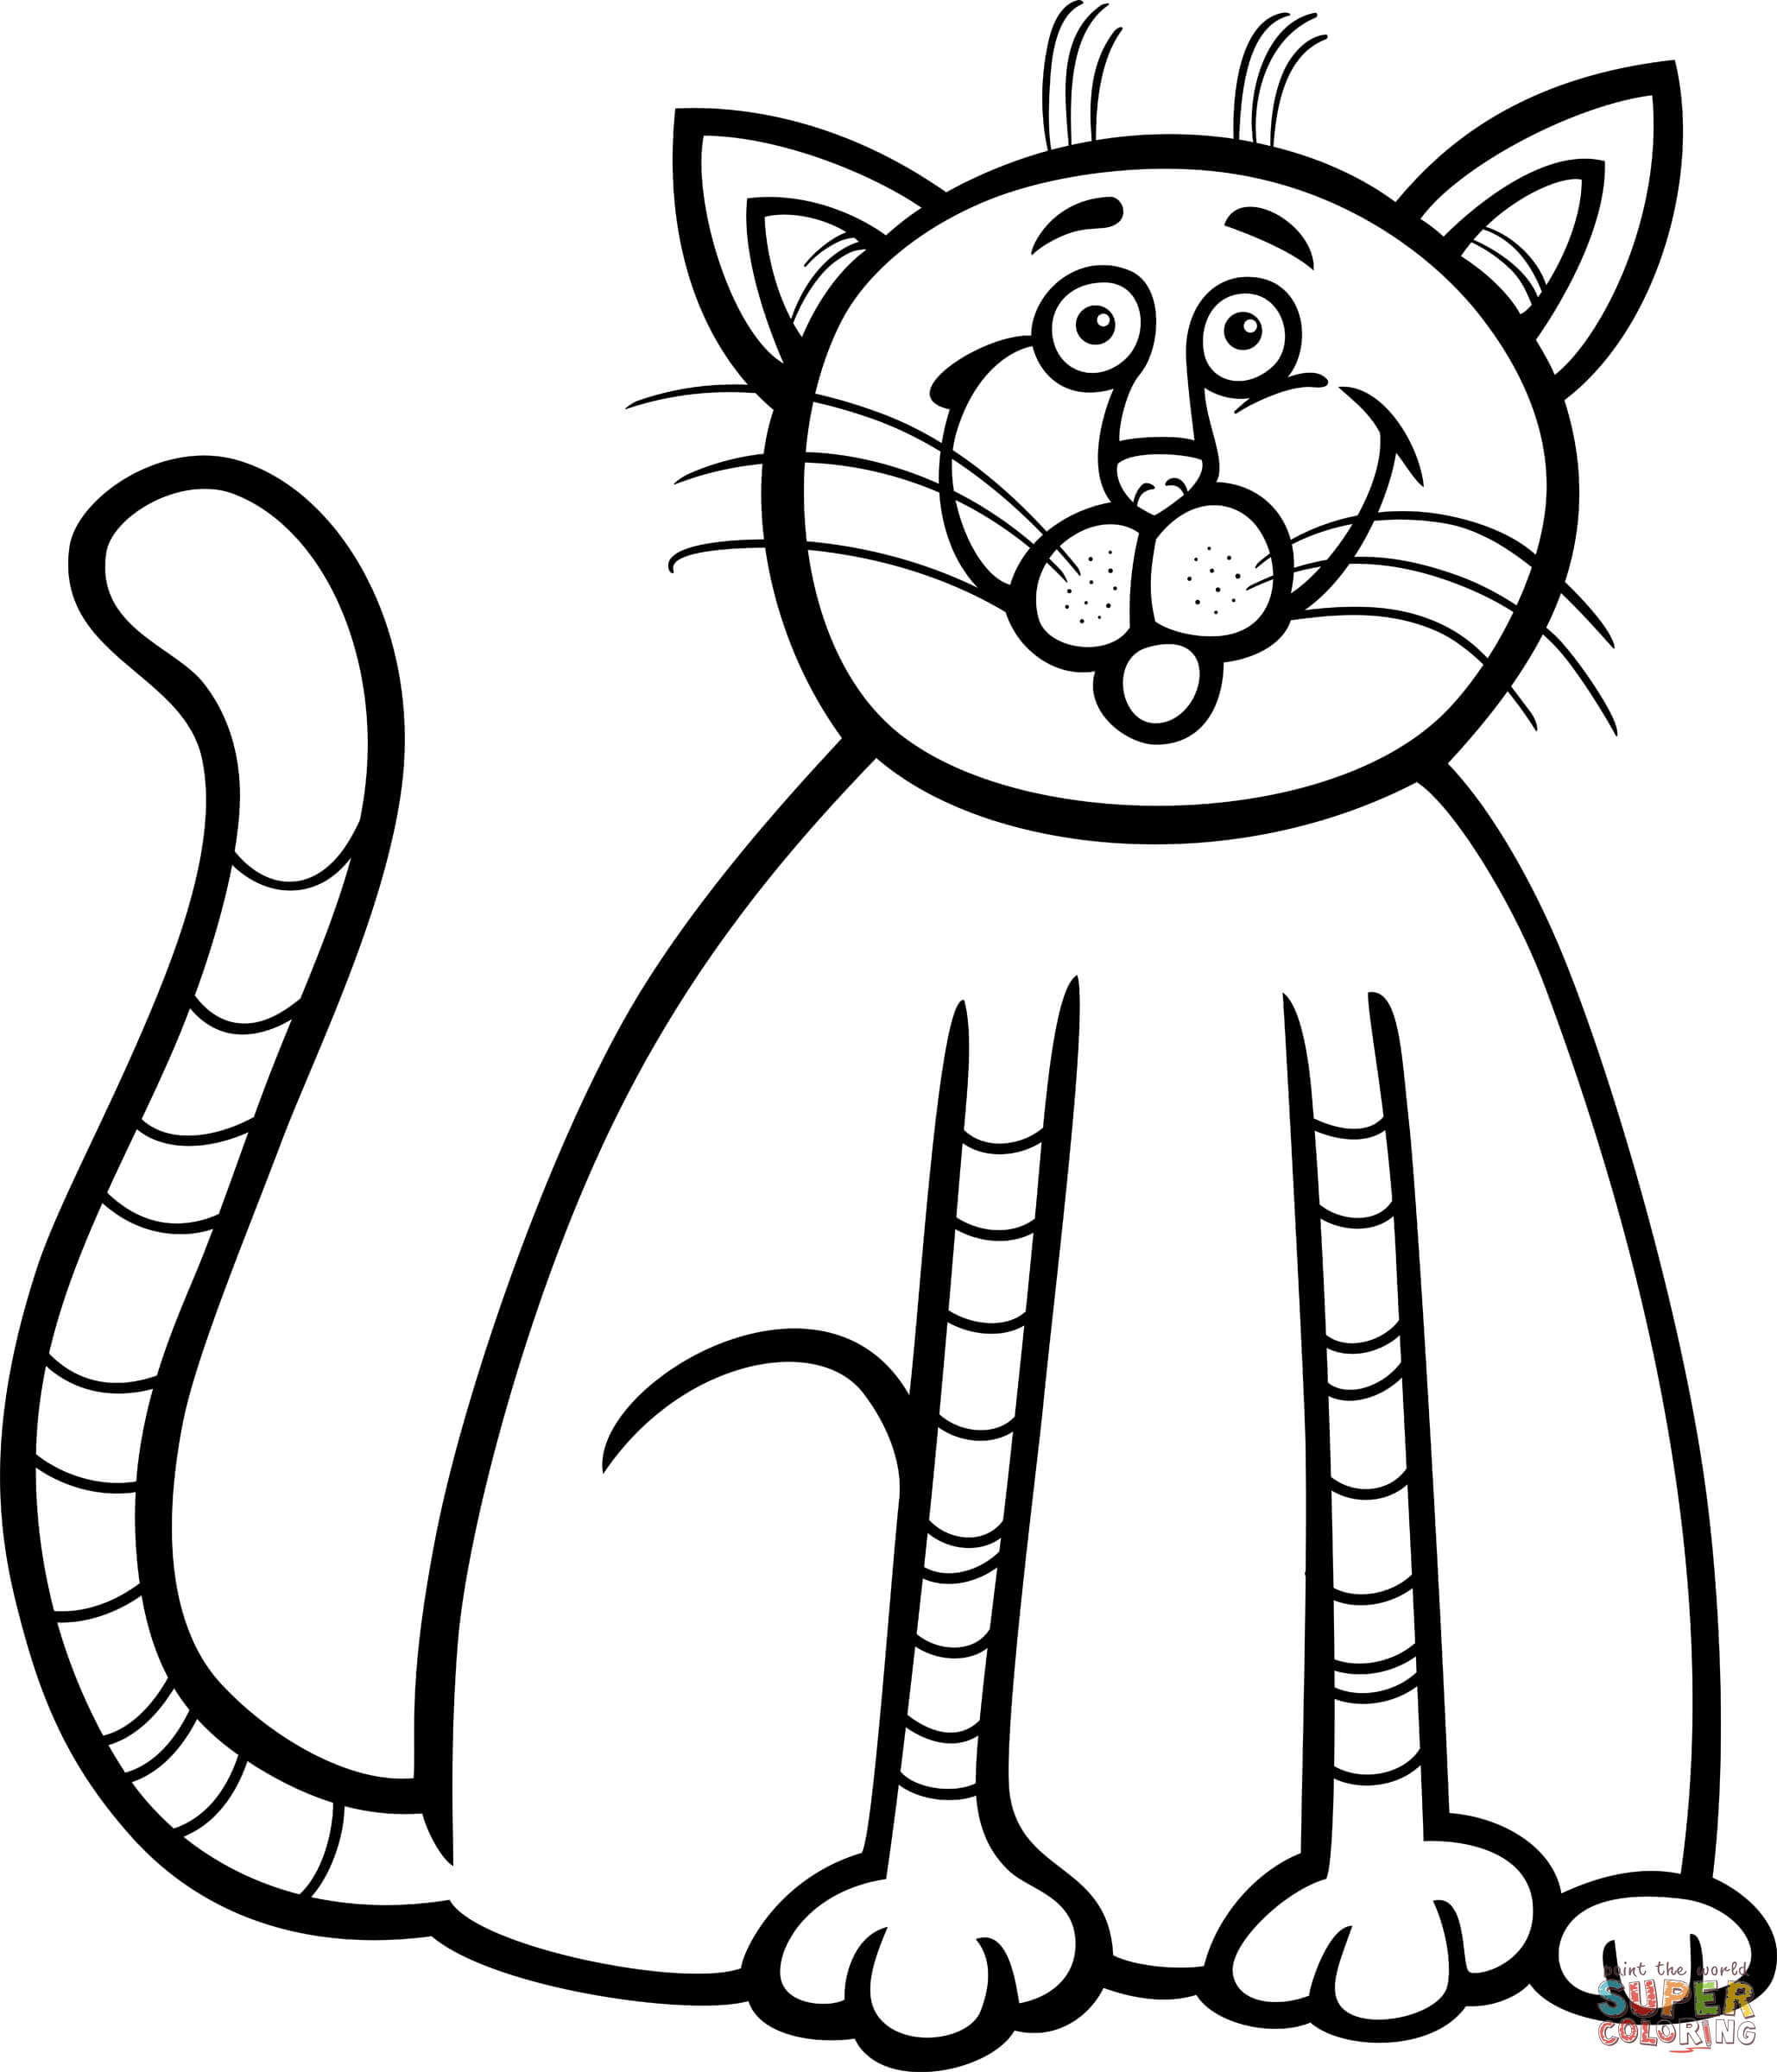 a kitten after a good breakfast download cute kitten colouring pages to print - Coloring Pages Kittens Print